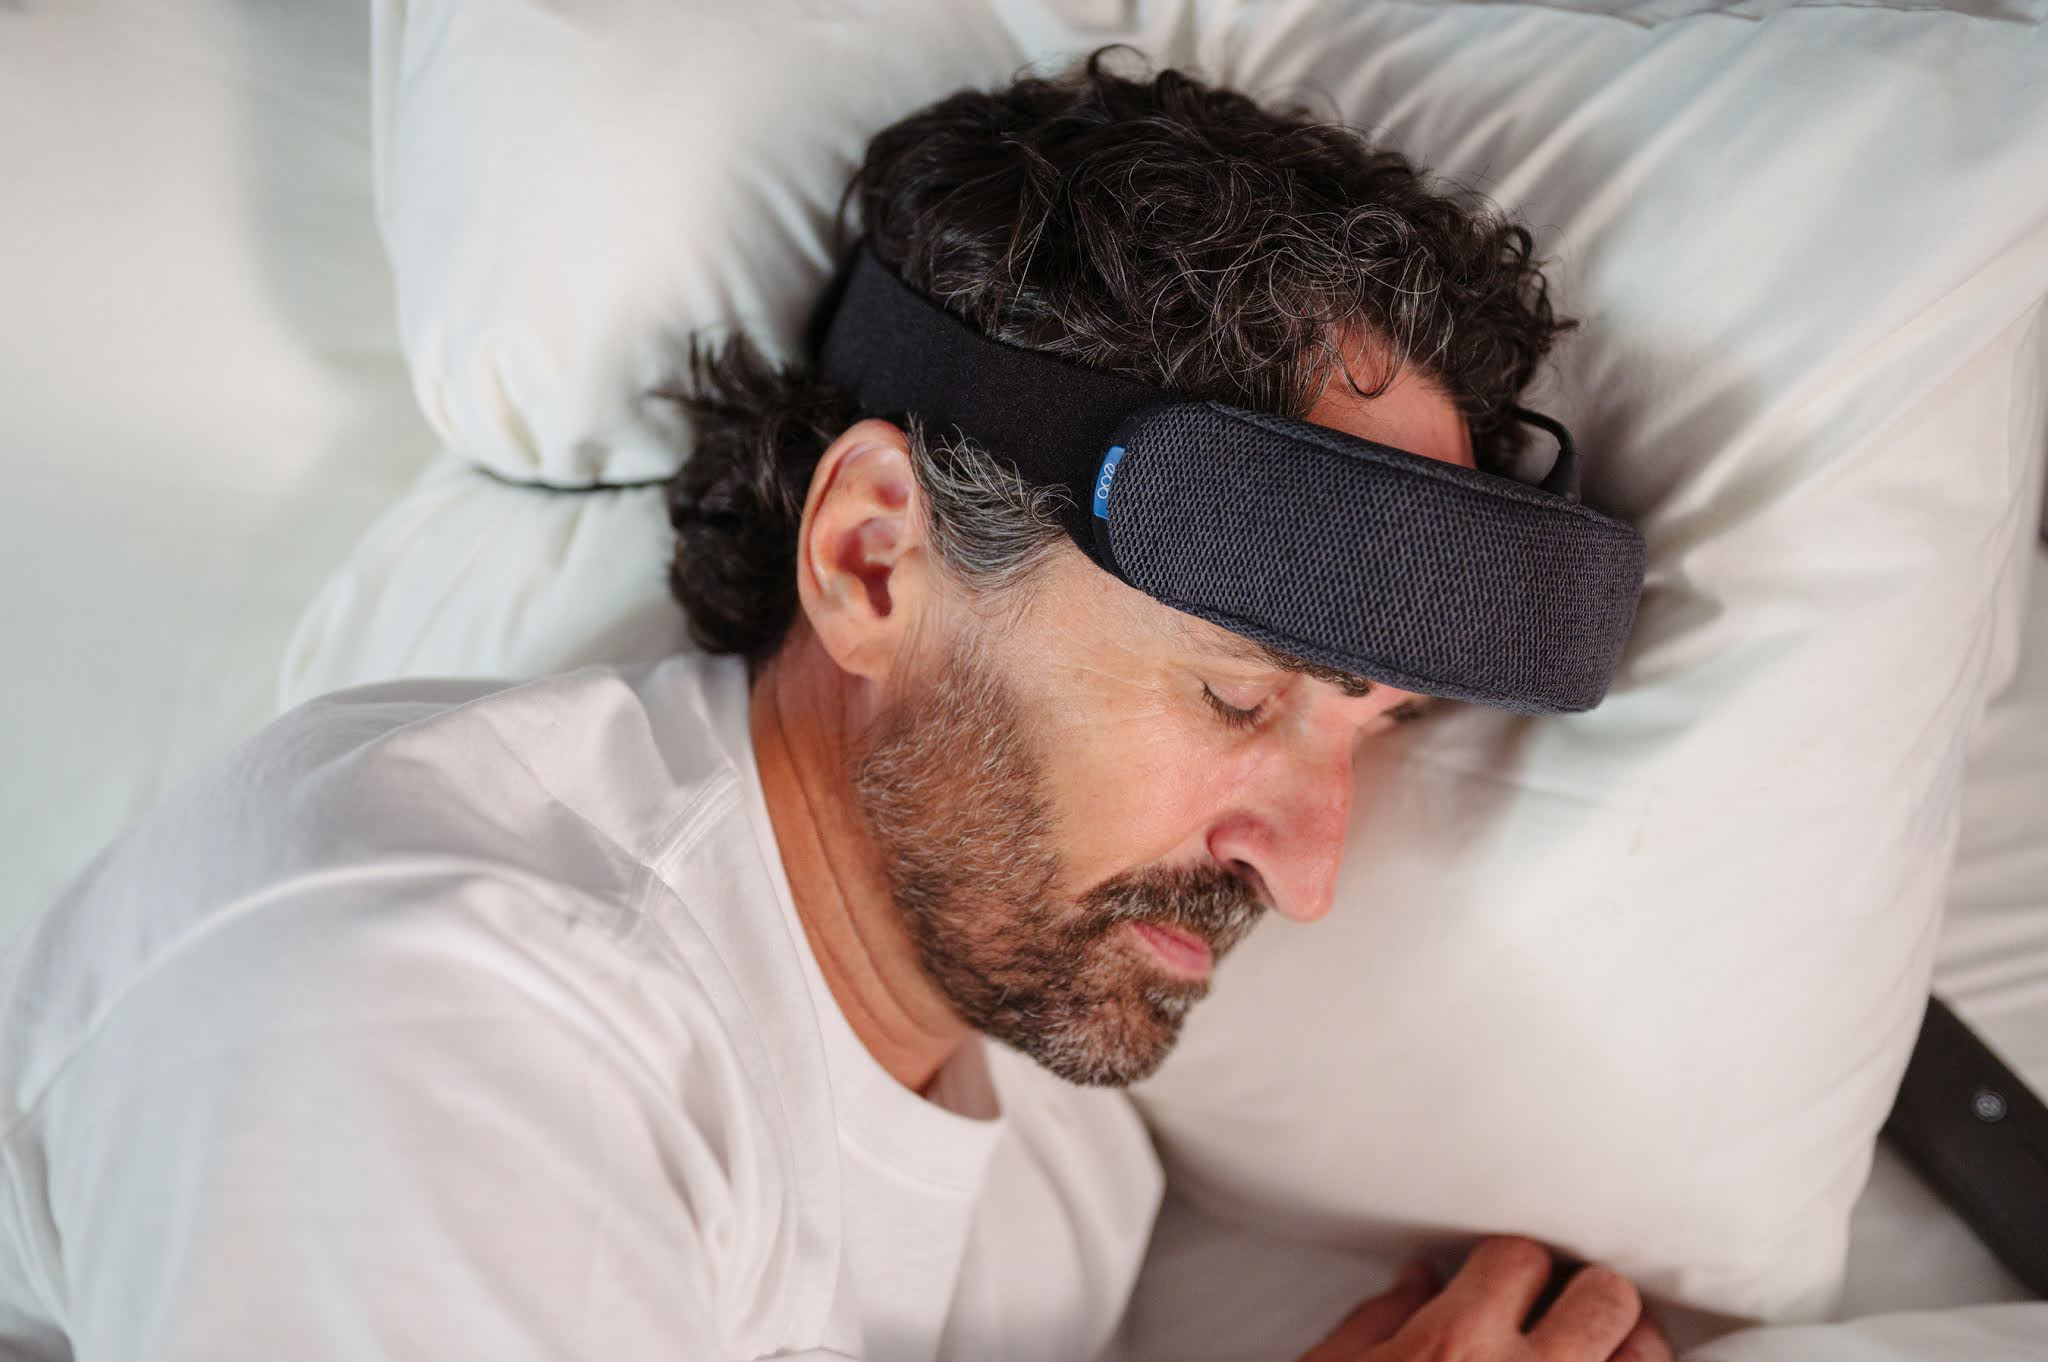 Ebb Therapeutics Brings To Market A New Cutting-Edge Sleep Wearable